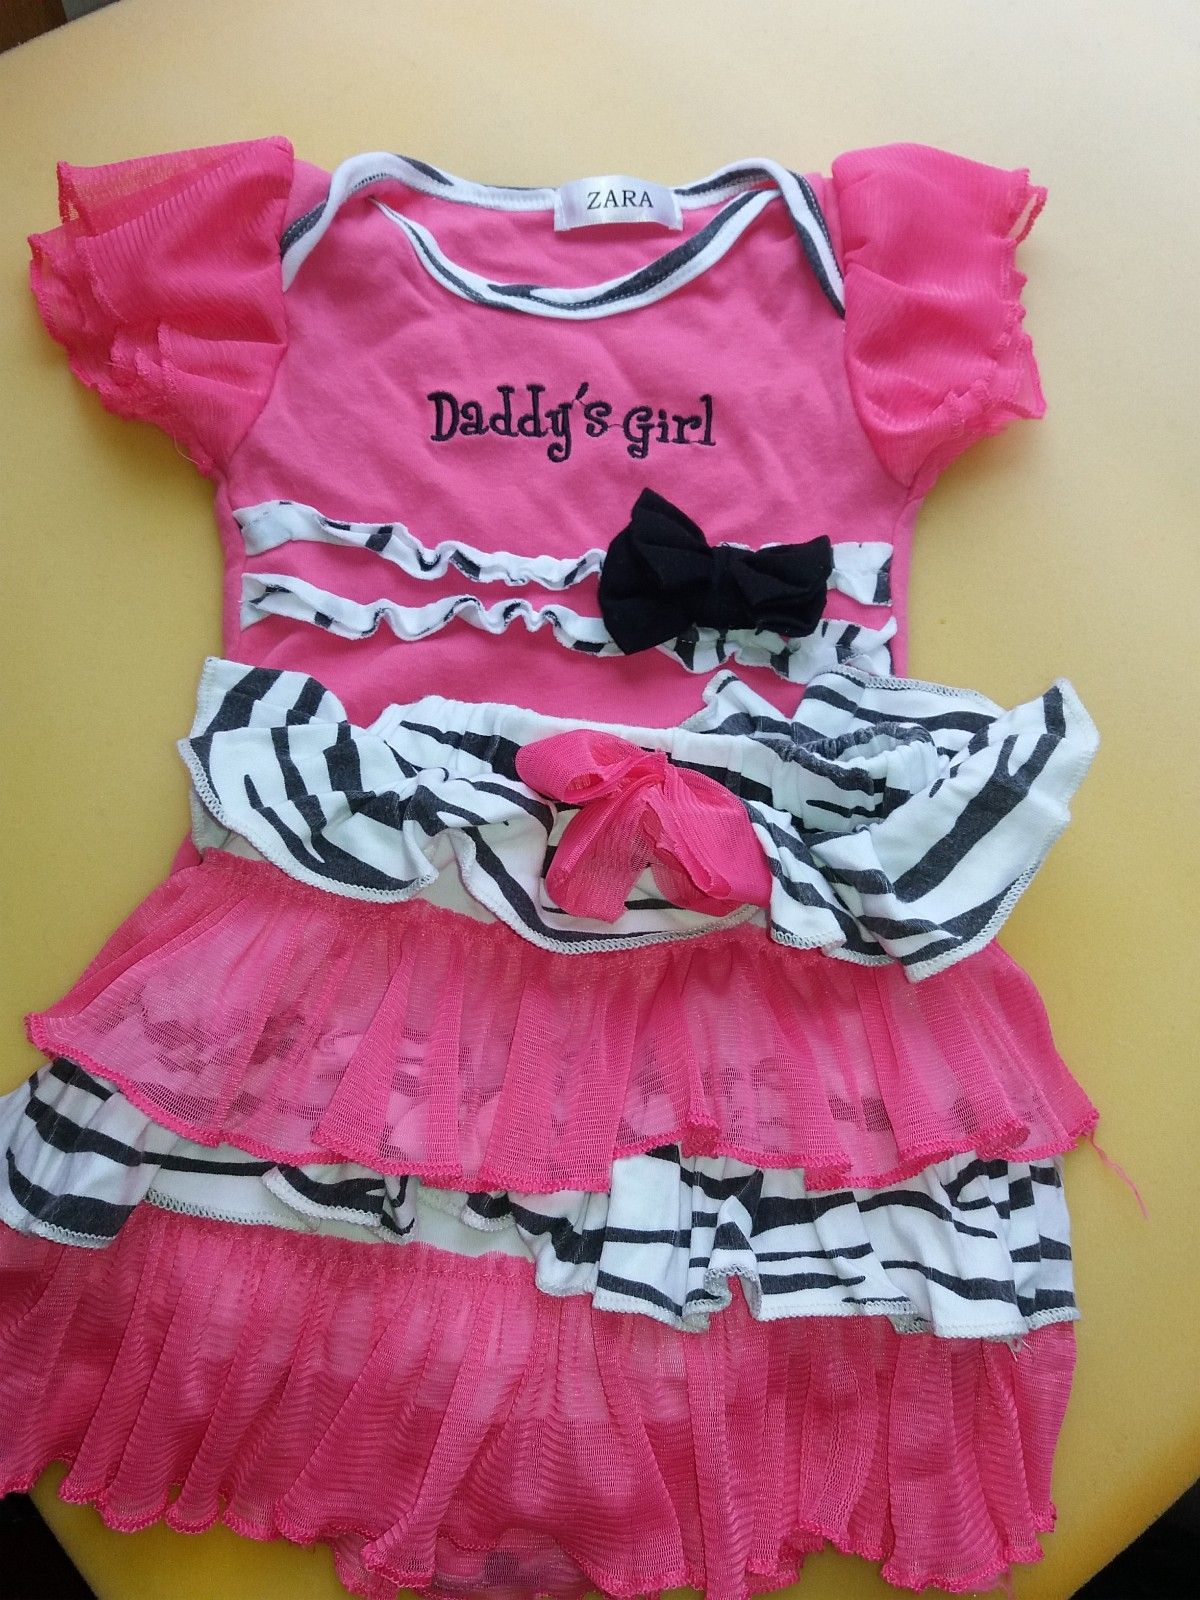 cute pink body and skirt for baby - Oslo  - cute summer attire for baby.....in very good cndition..can be pick up at vinderen - Oslo